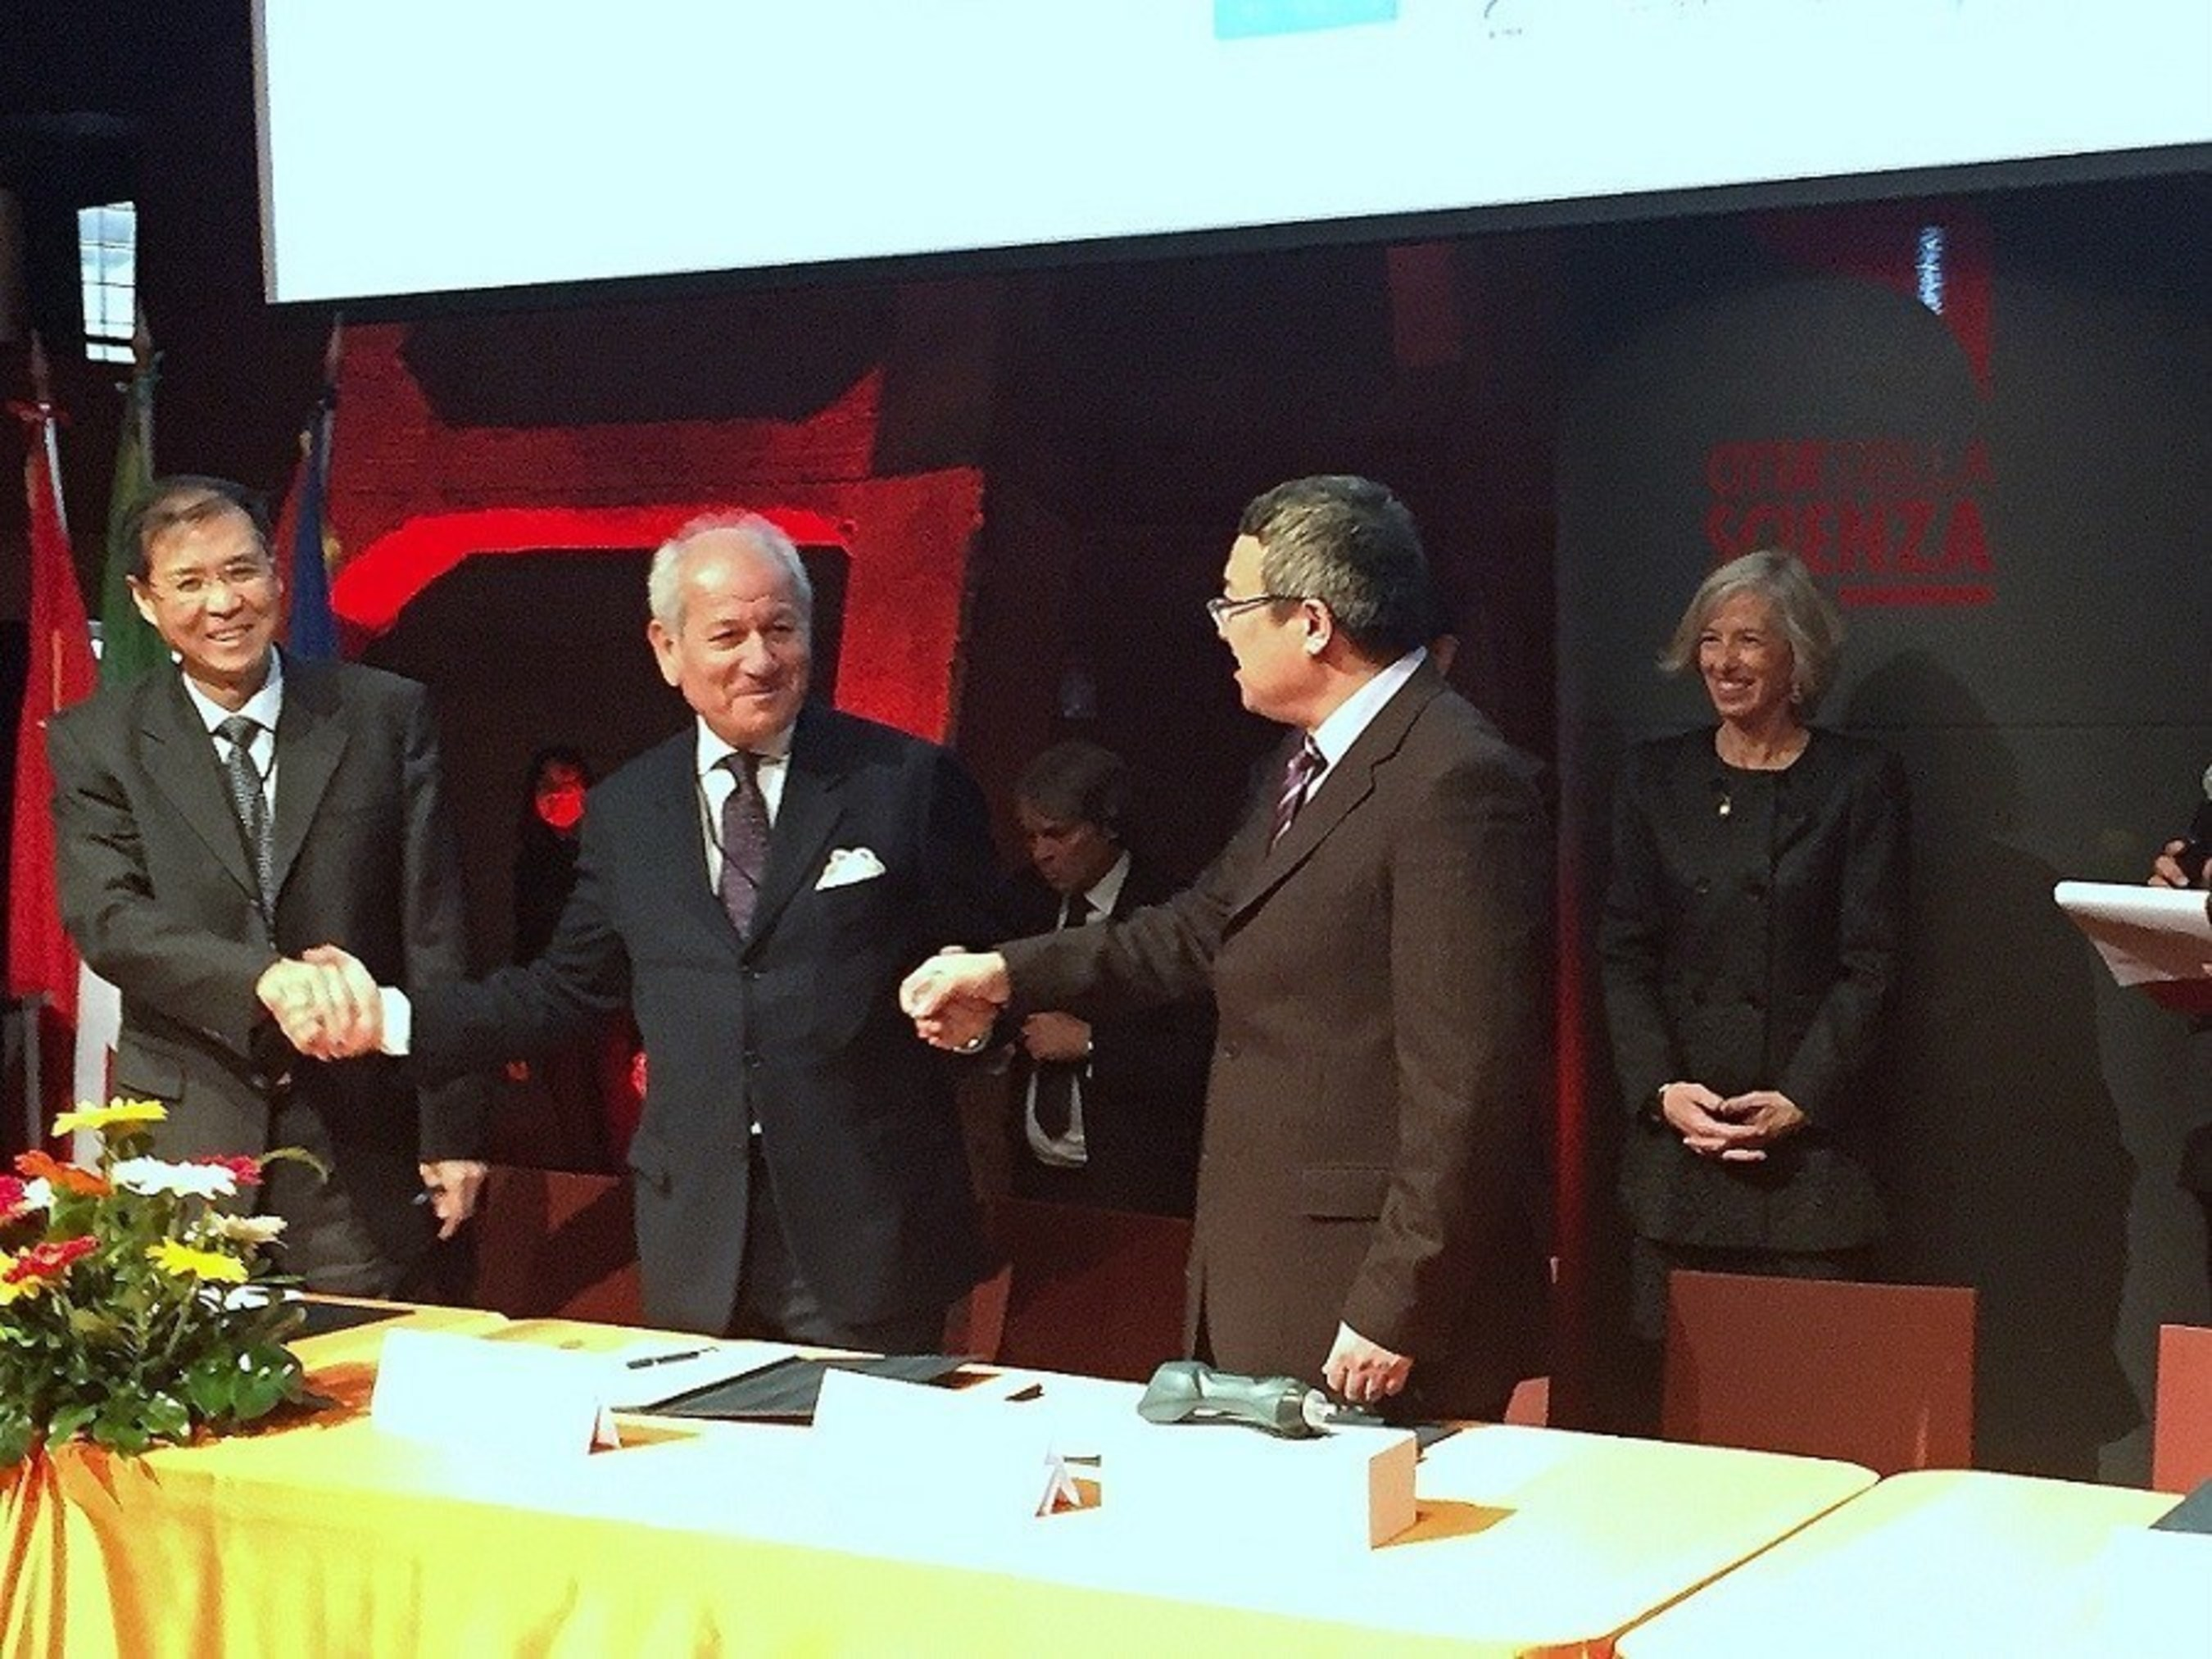 Agreement to develop appropriate protocols for applying MLS(R) Laser to Chinese acupuncture points (PRNewsFoto/ASA Srl)